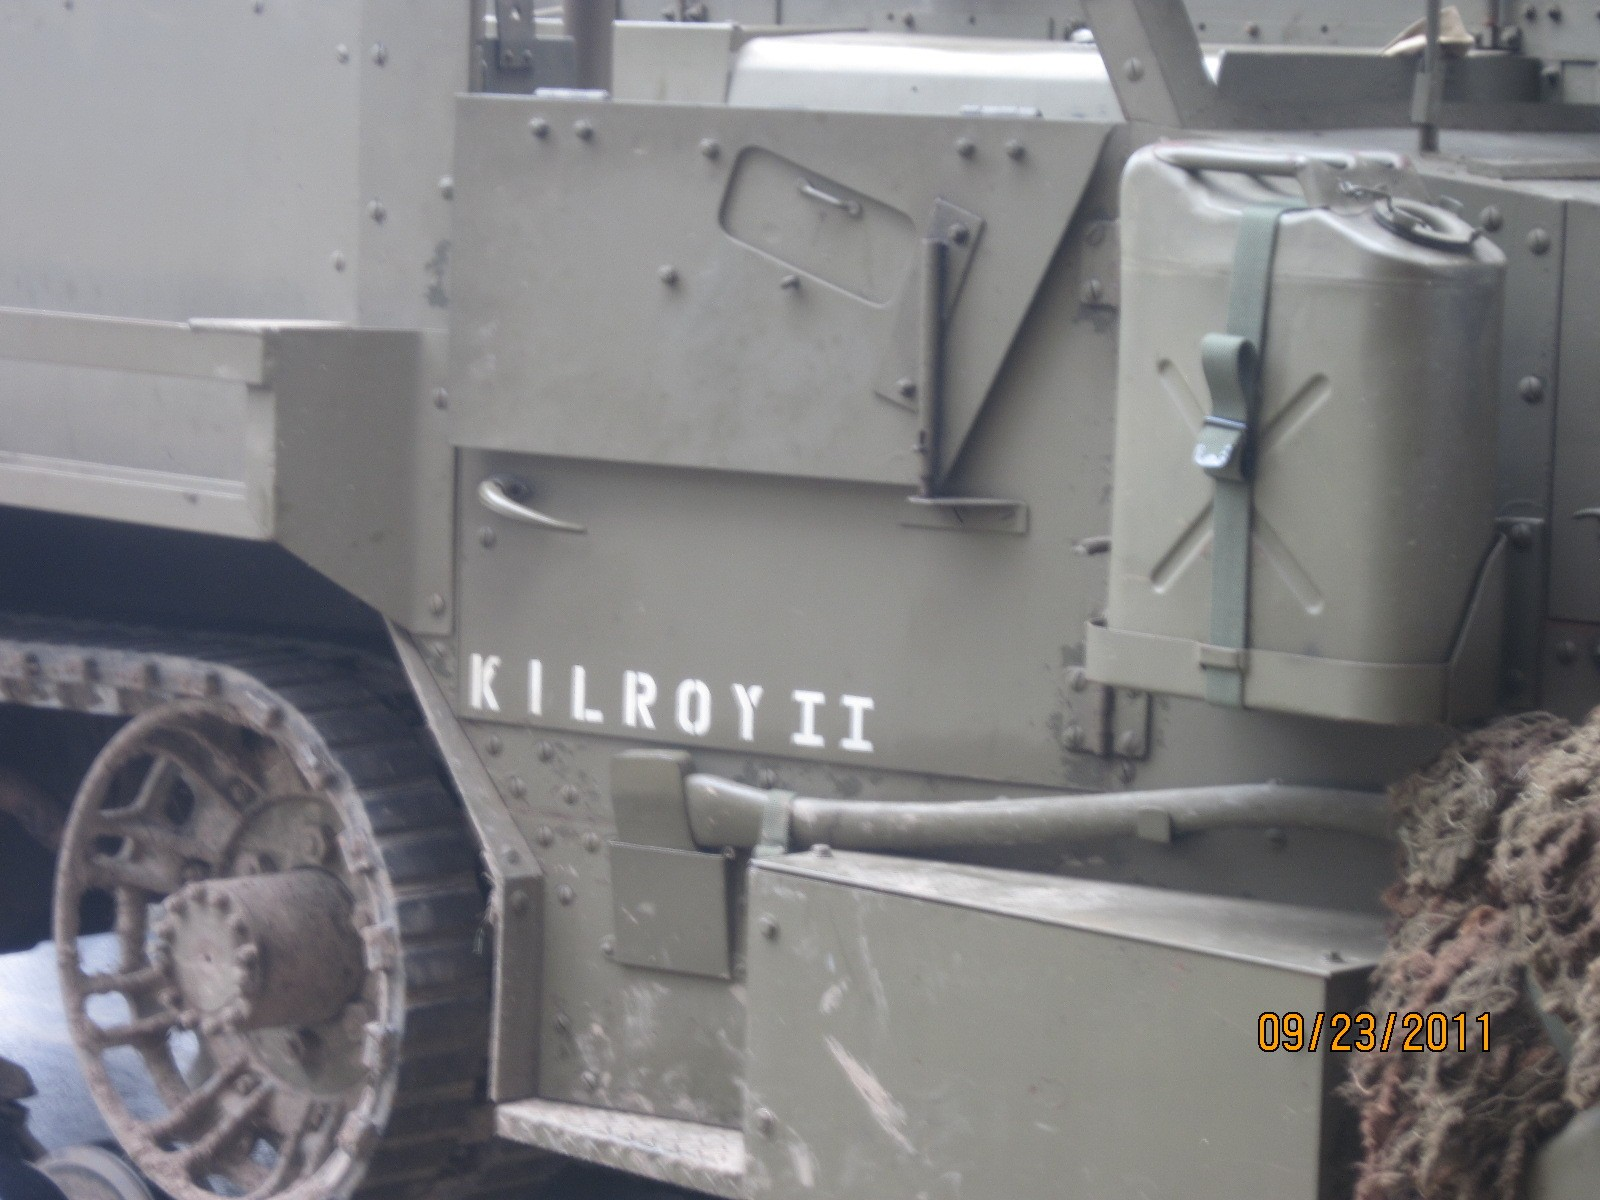 convoy - Kilory was here.JPG